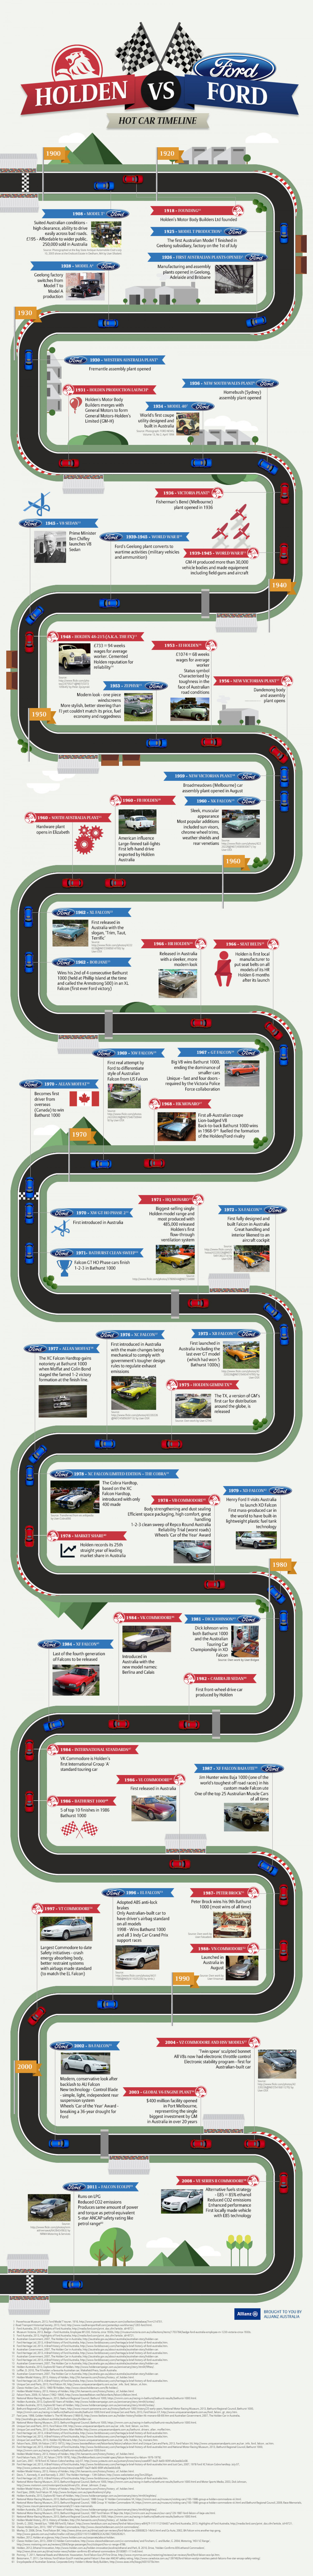 Holden vs. Ford Hot Car Infographic